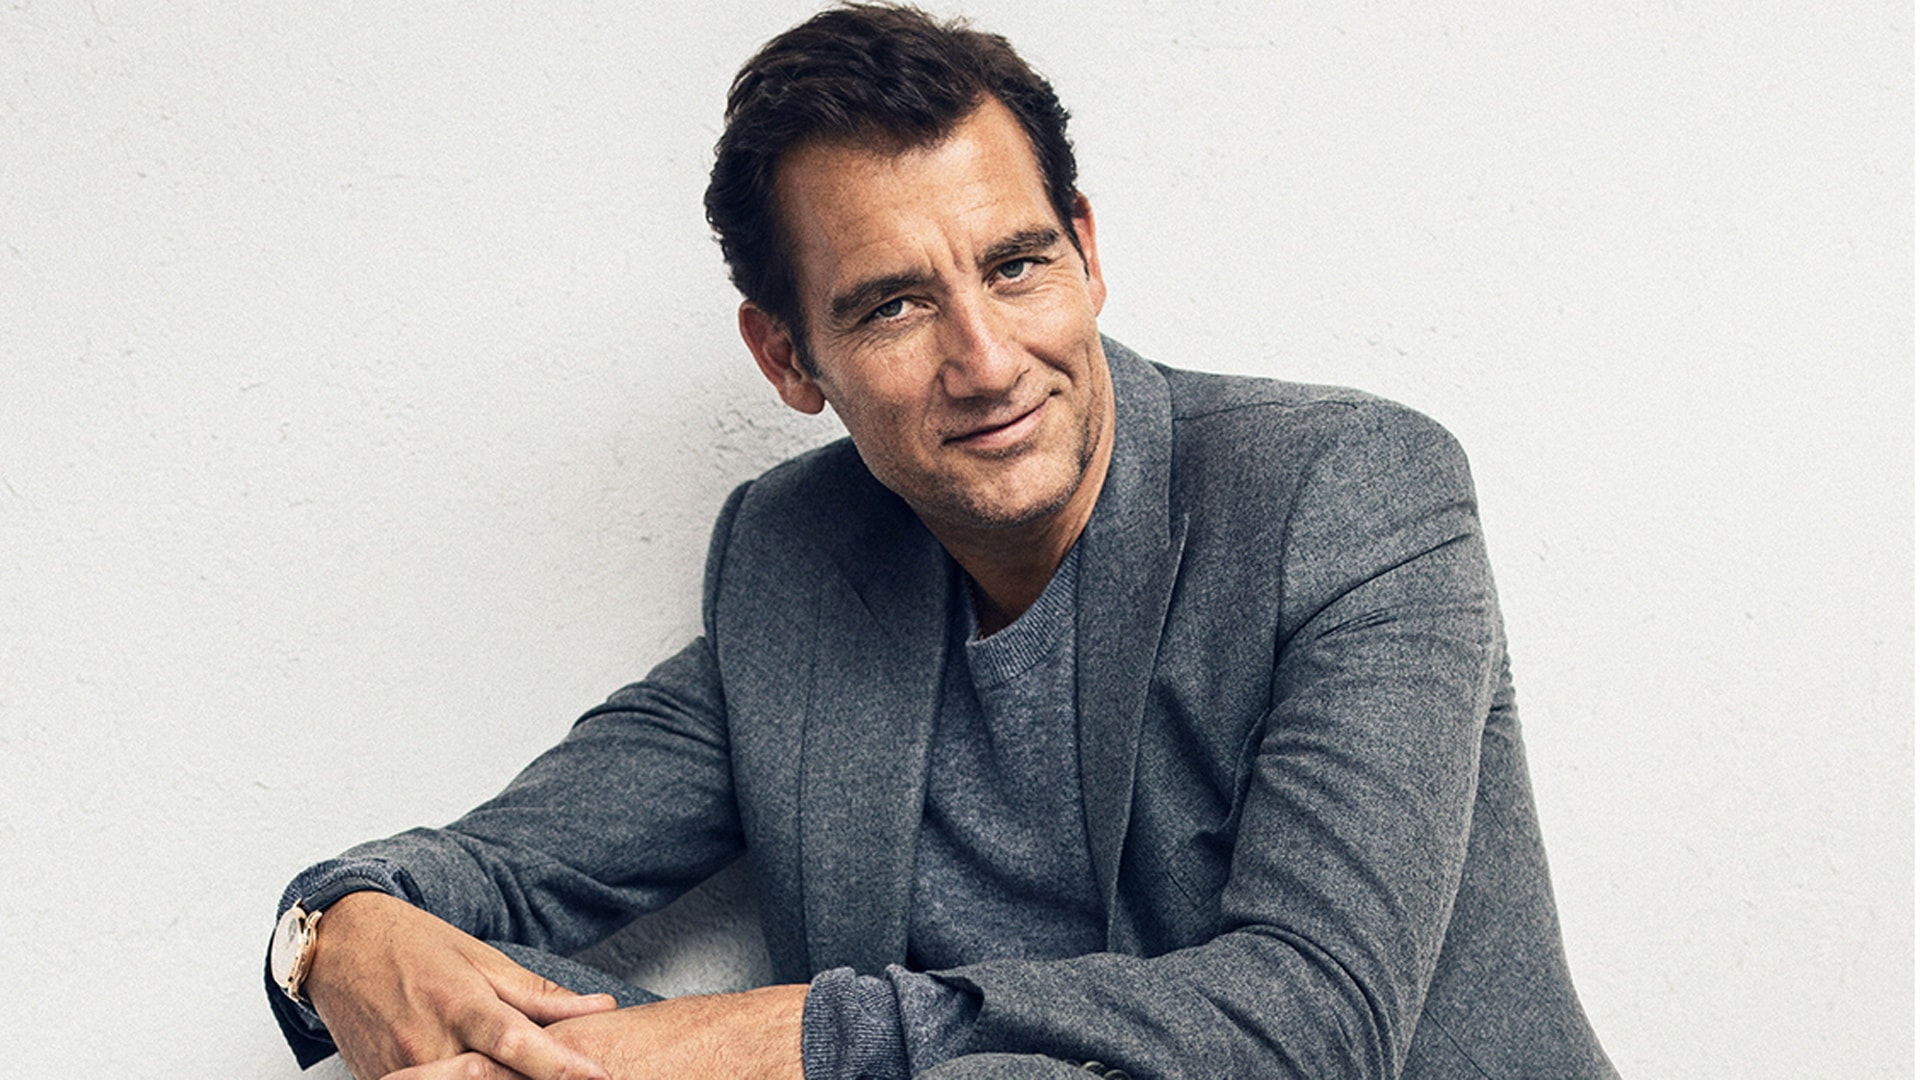 Clive Owen Widescreen for desktop